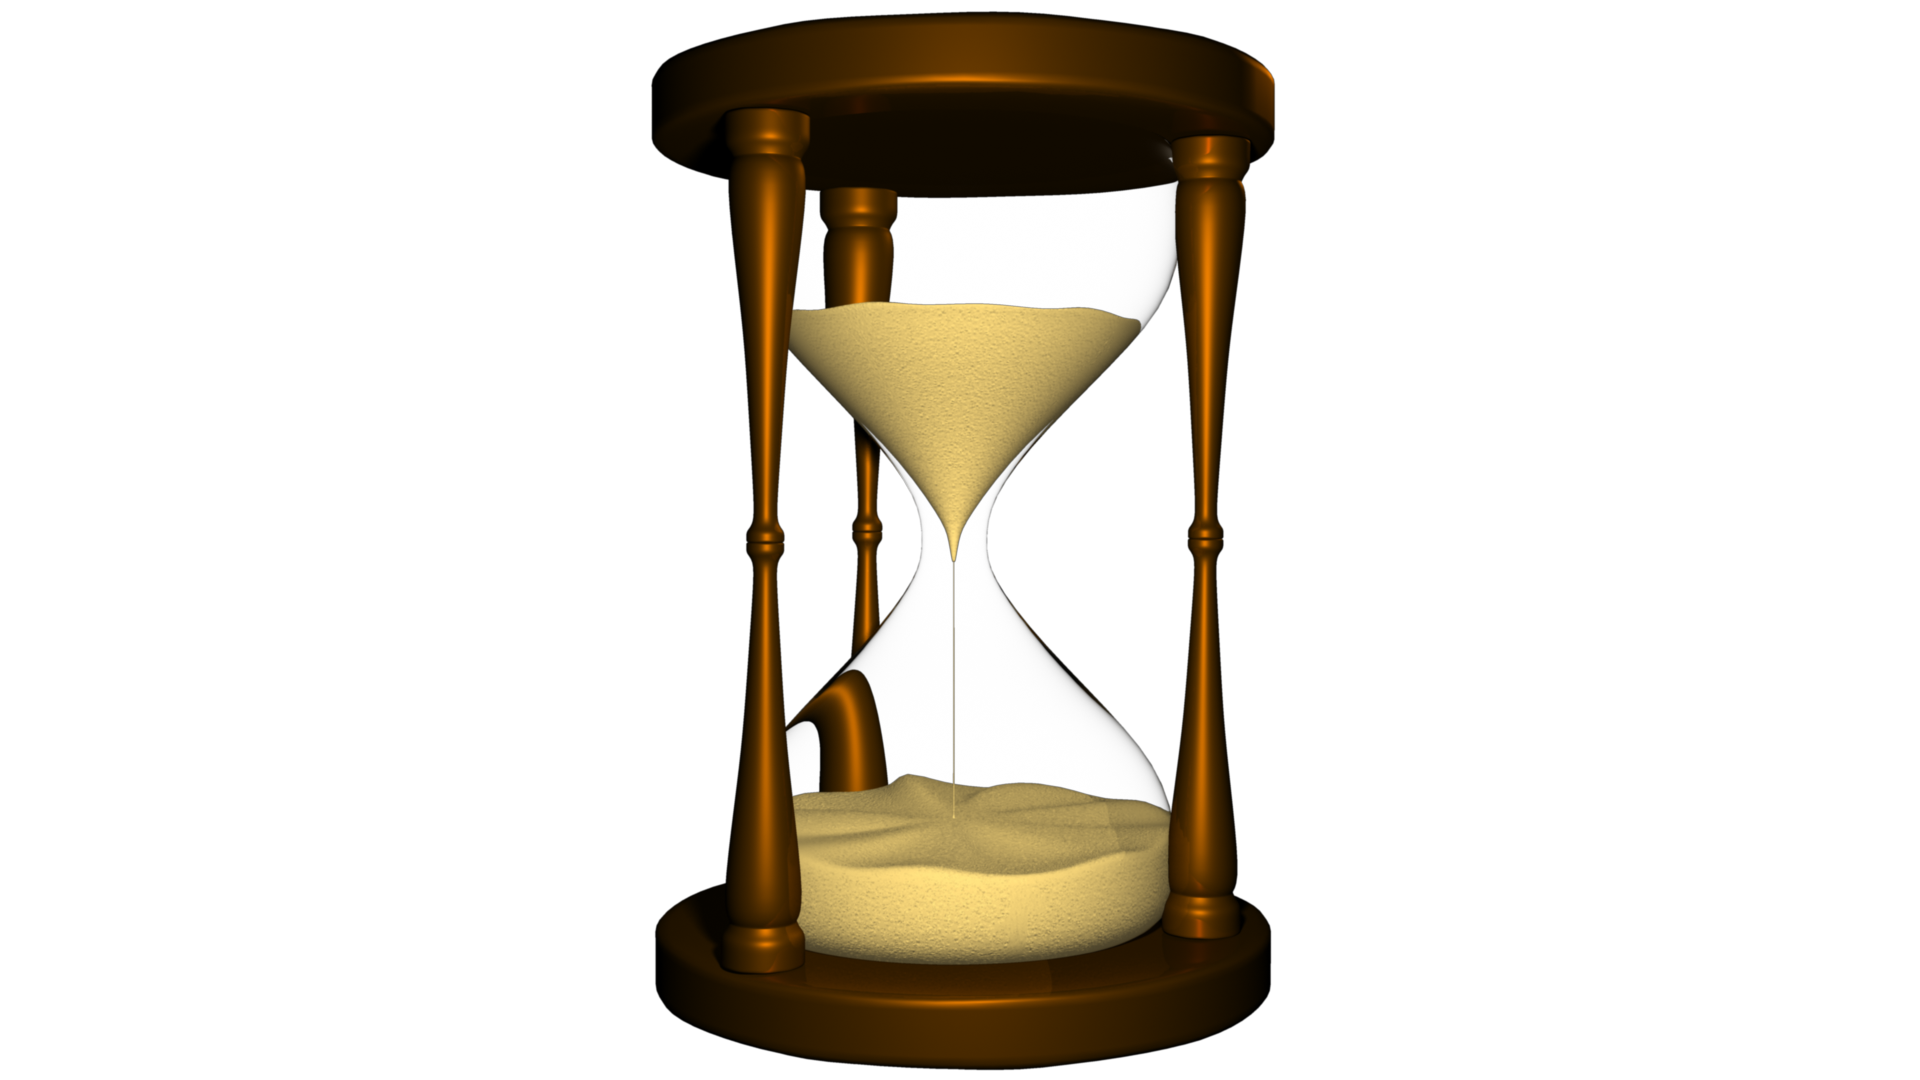 png 1920x1080 Hourglass with blank background - Hourglass PNG - Hourglass PNG HD